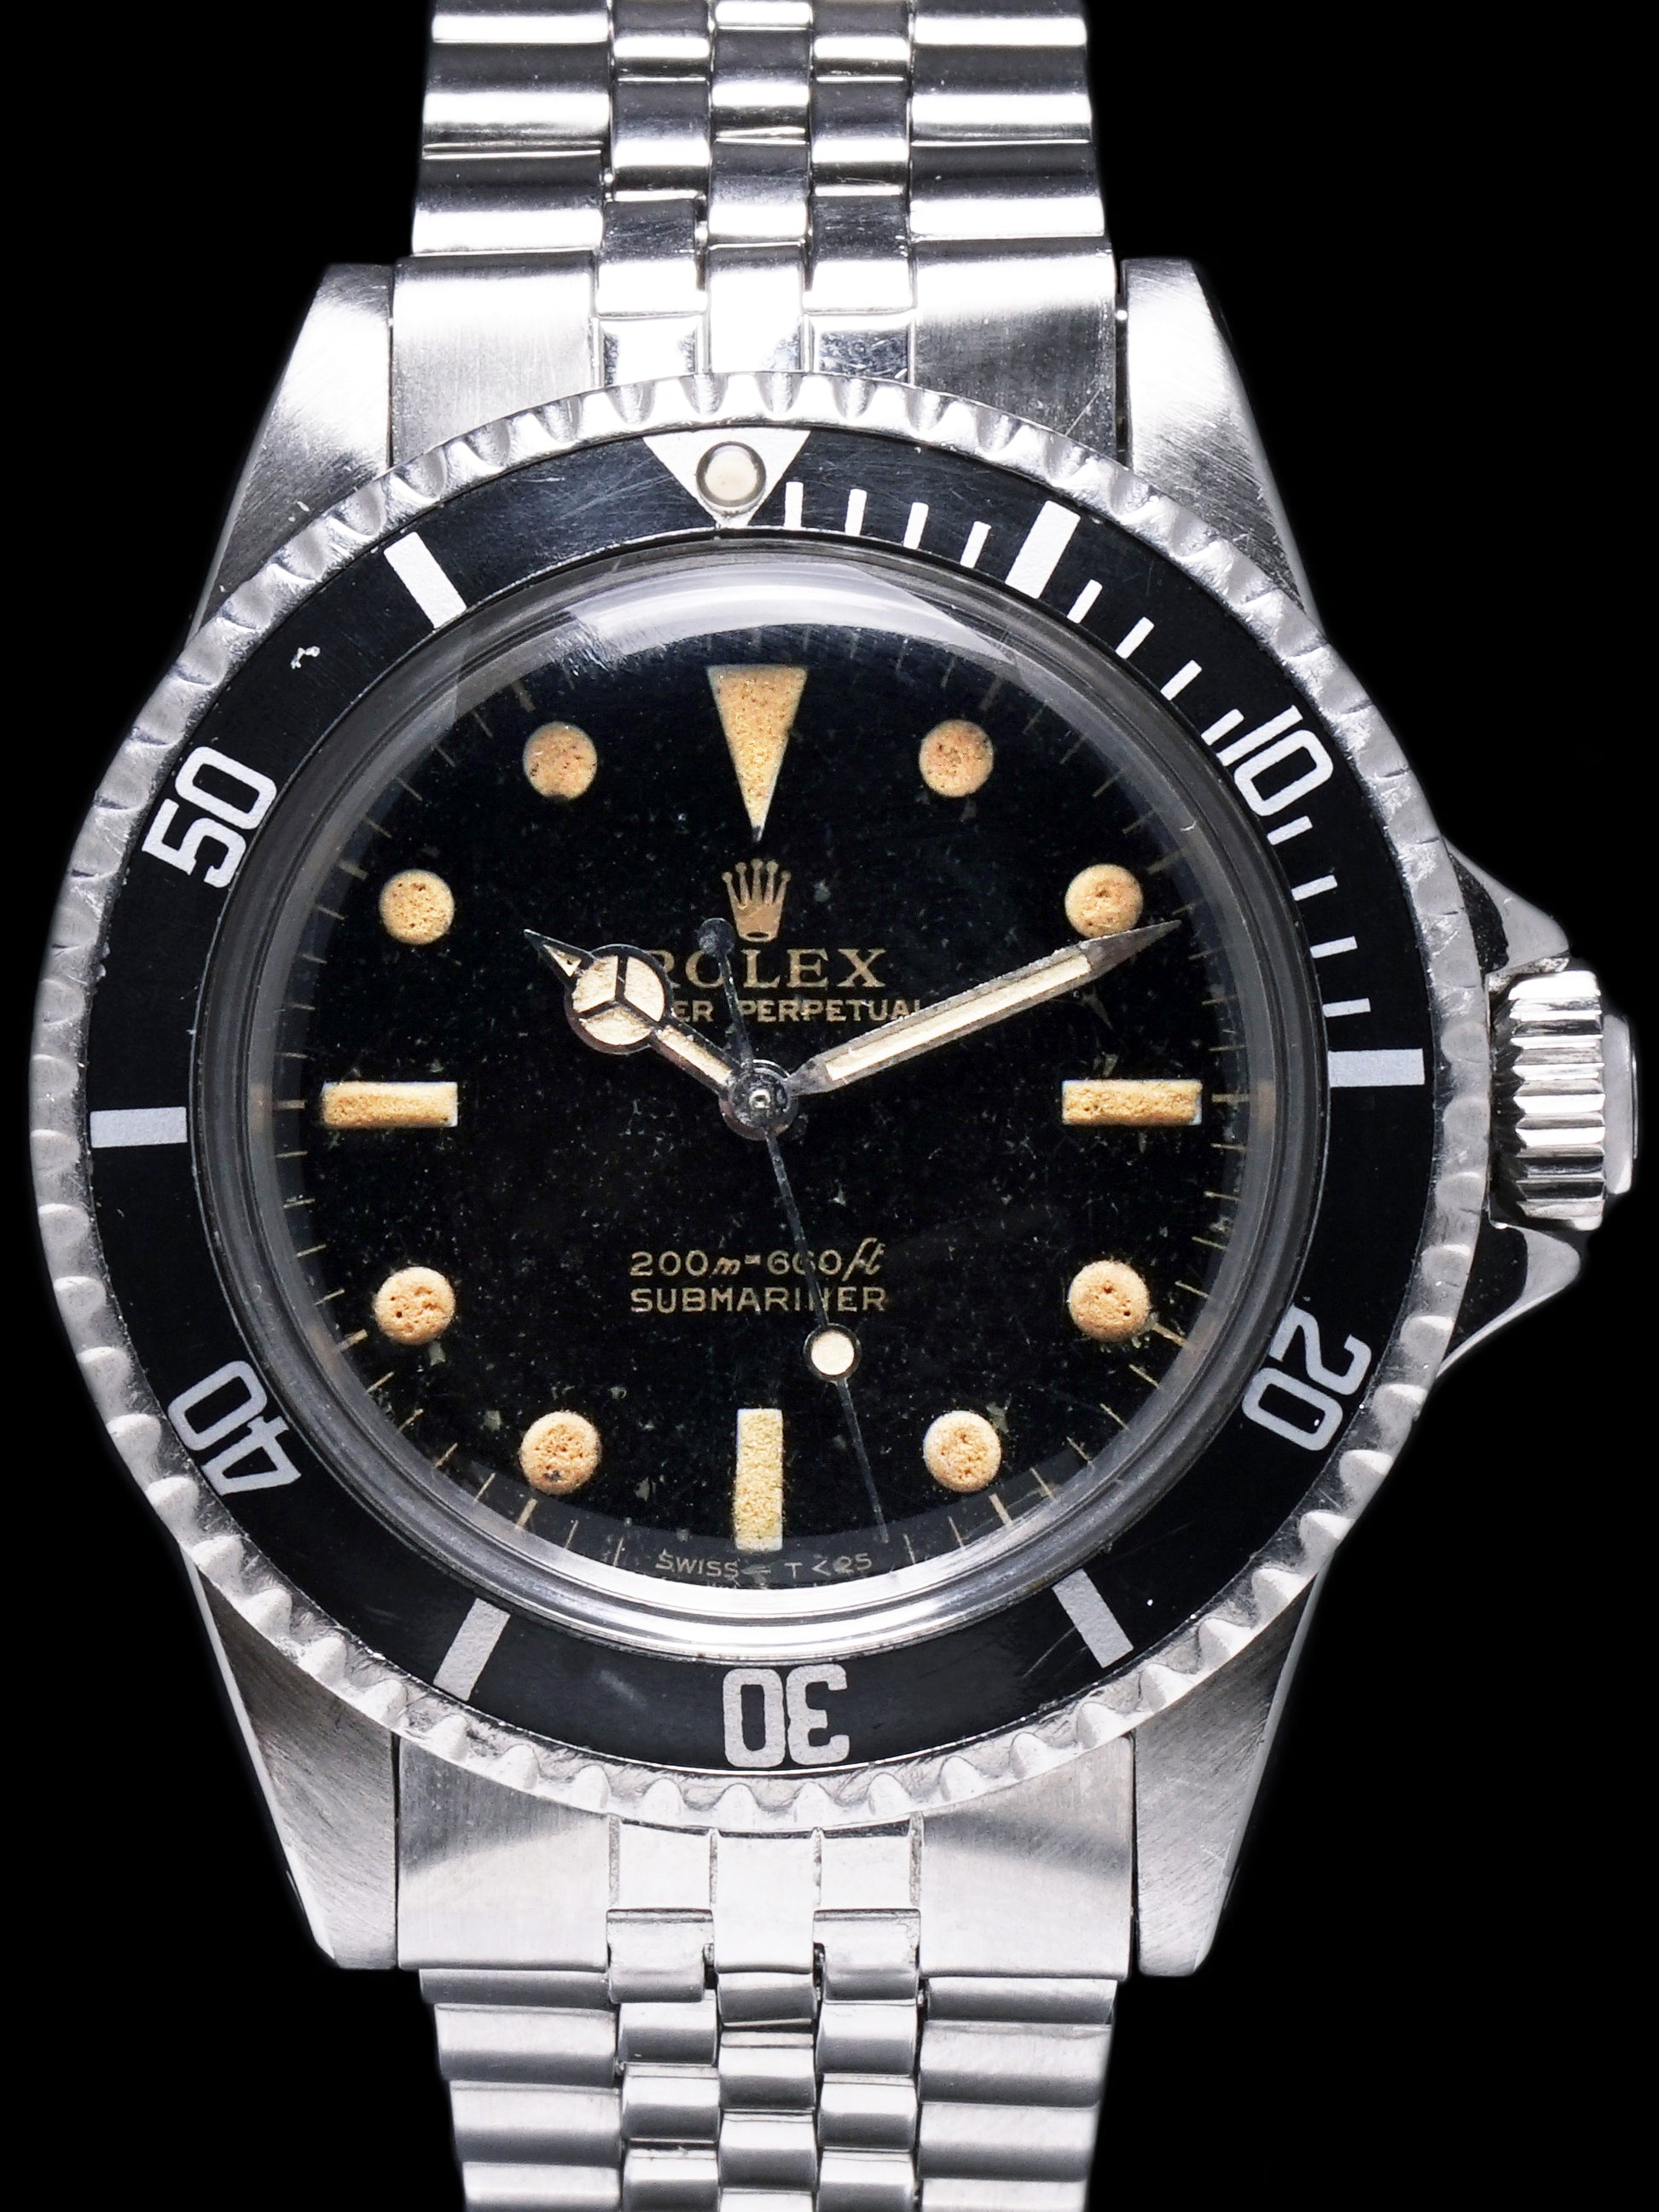 1965 Rolex Submariner (Ref. 5513) GILT